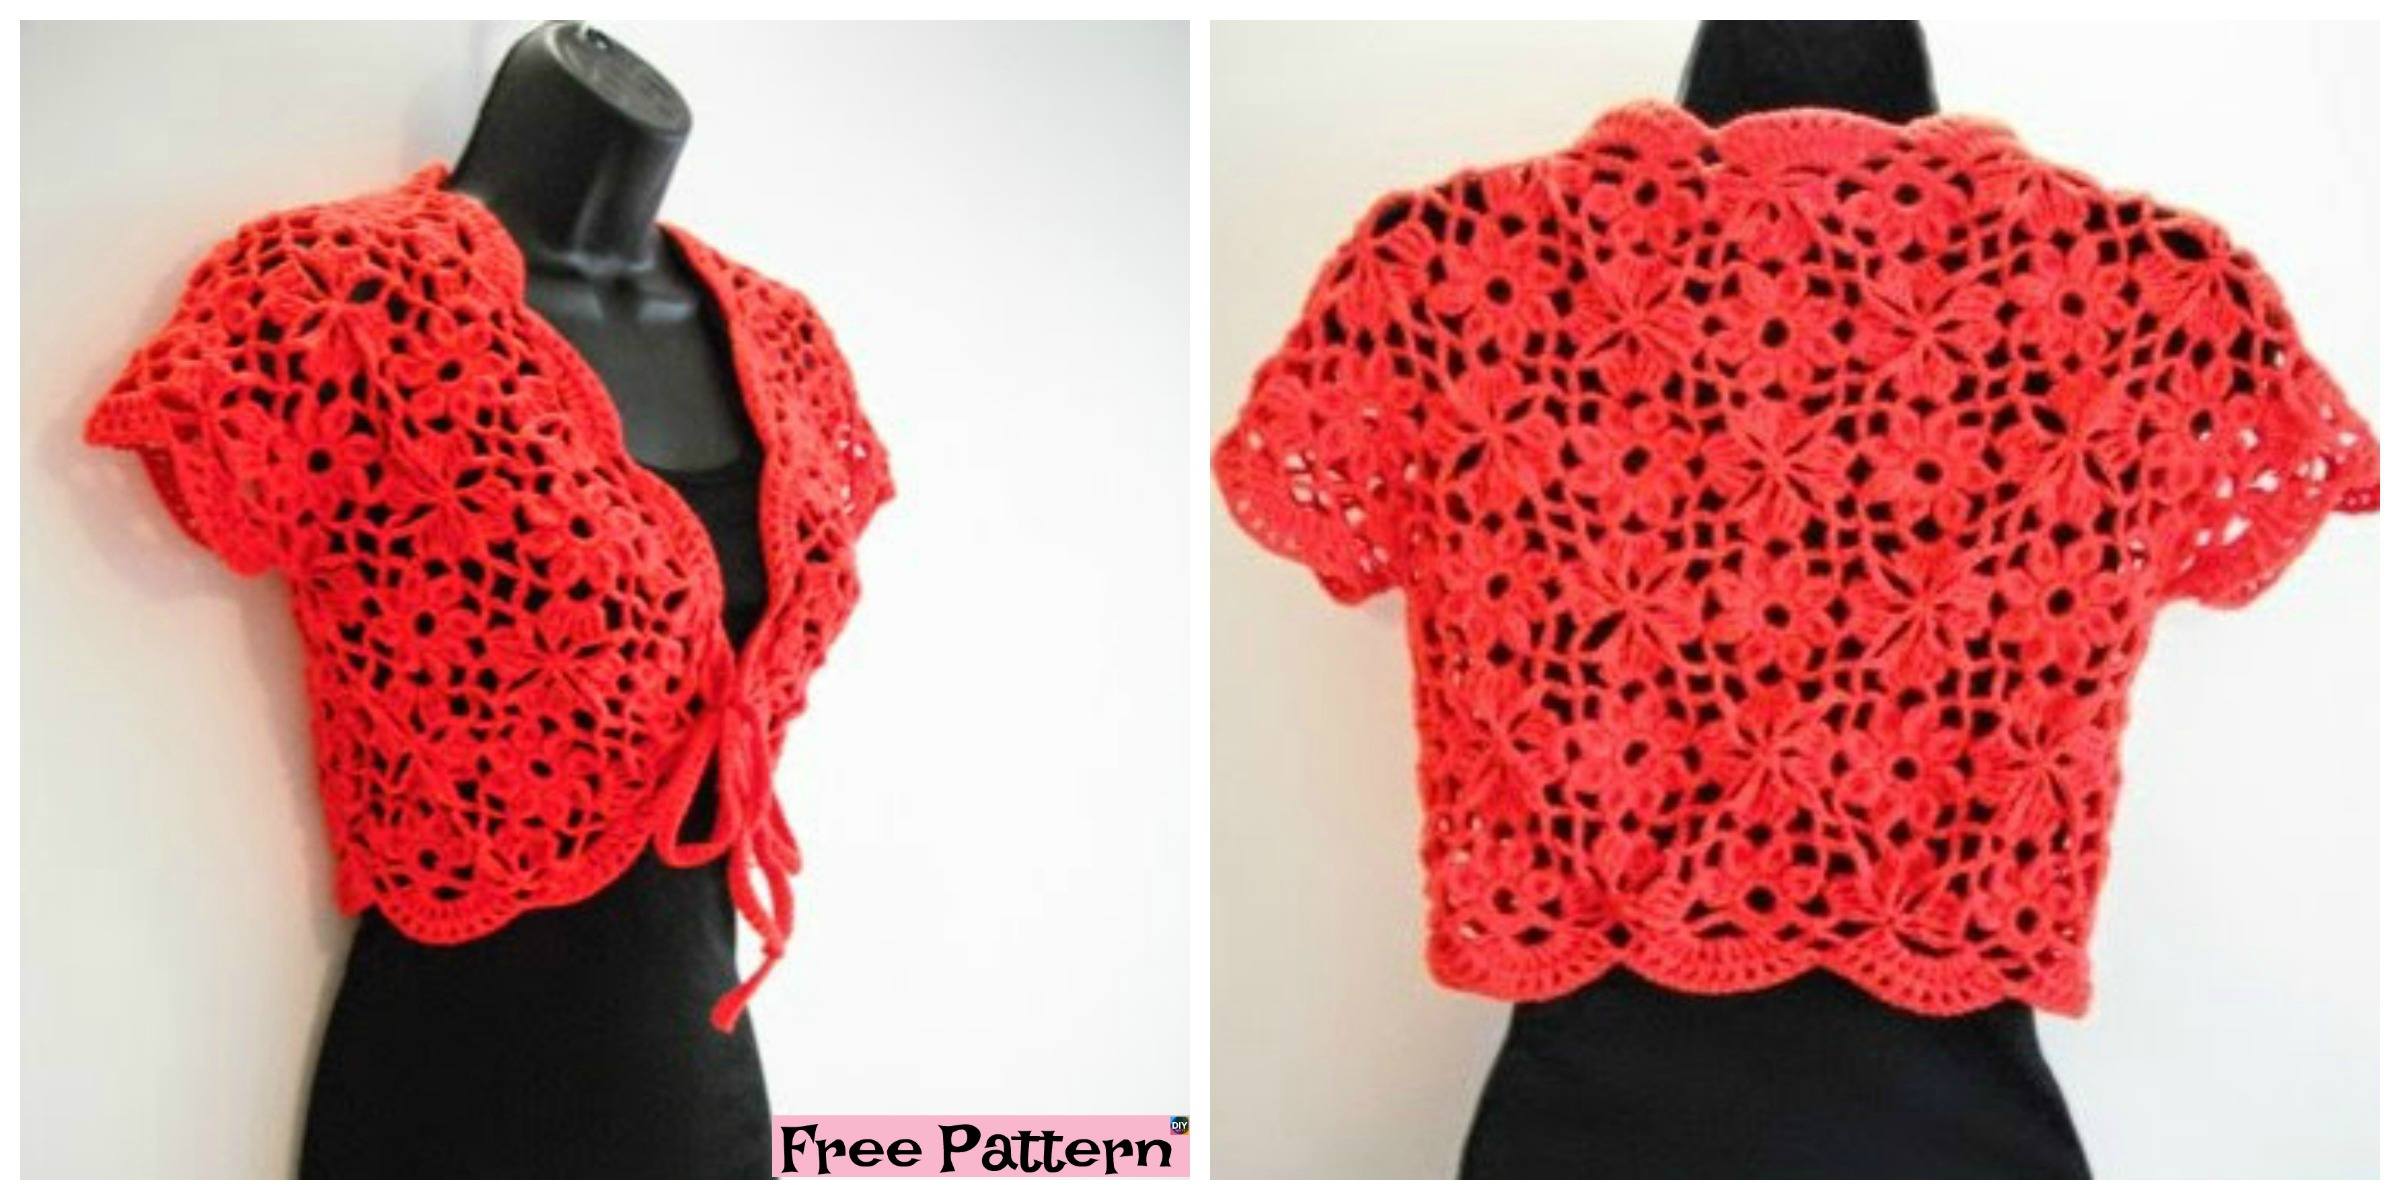 Crochet Flower Jacket with Motifs – Free Pattern & Video